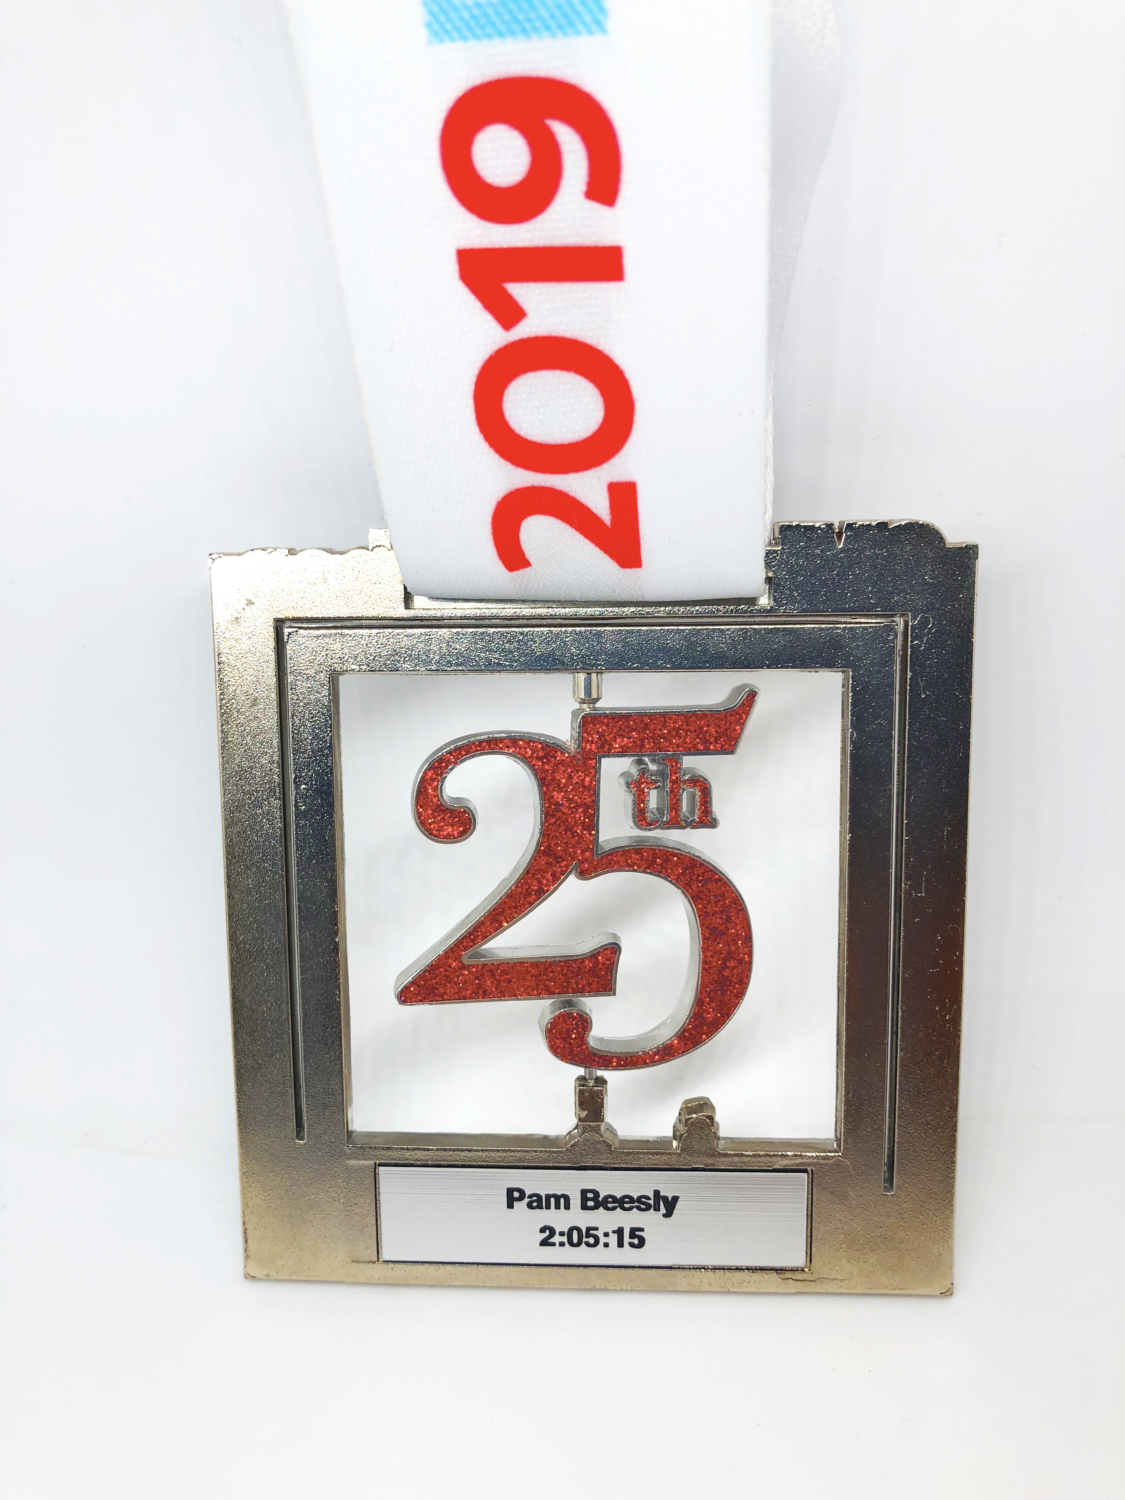 Register for 2020 3M Half Marathon on May 1st and you'll get a free personalized nameplate!